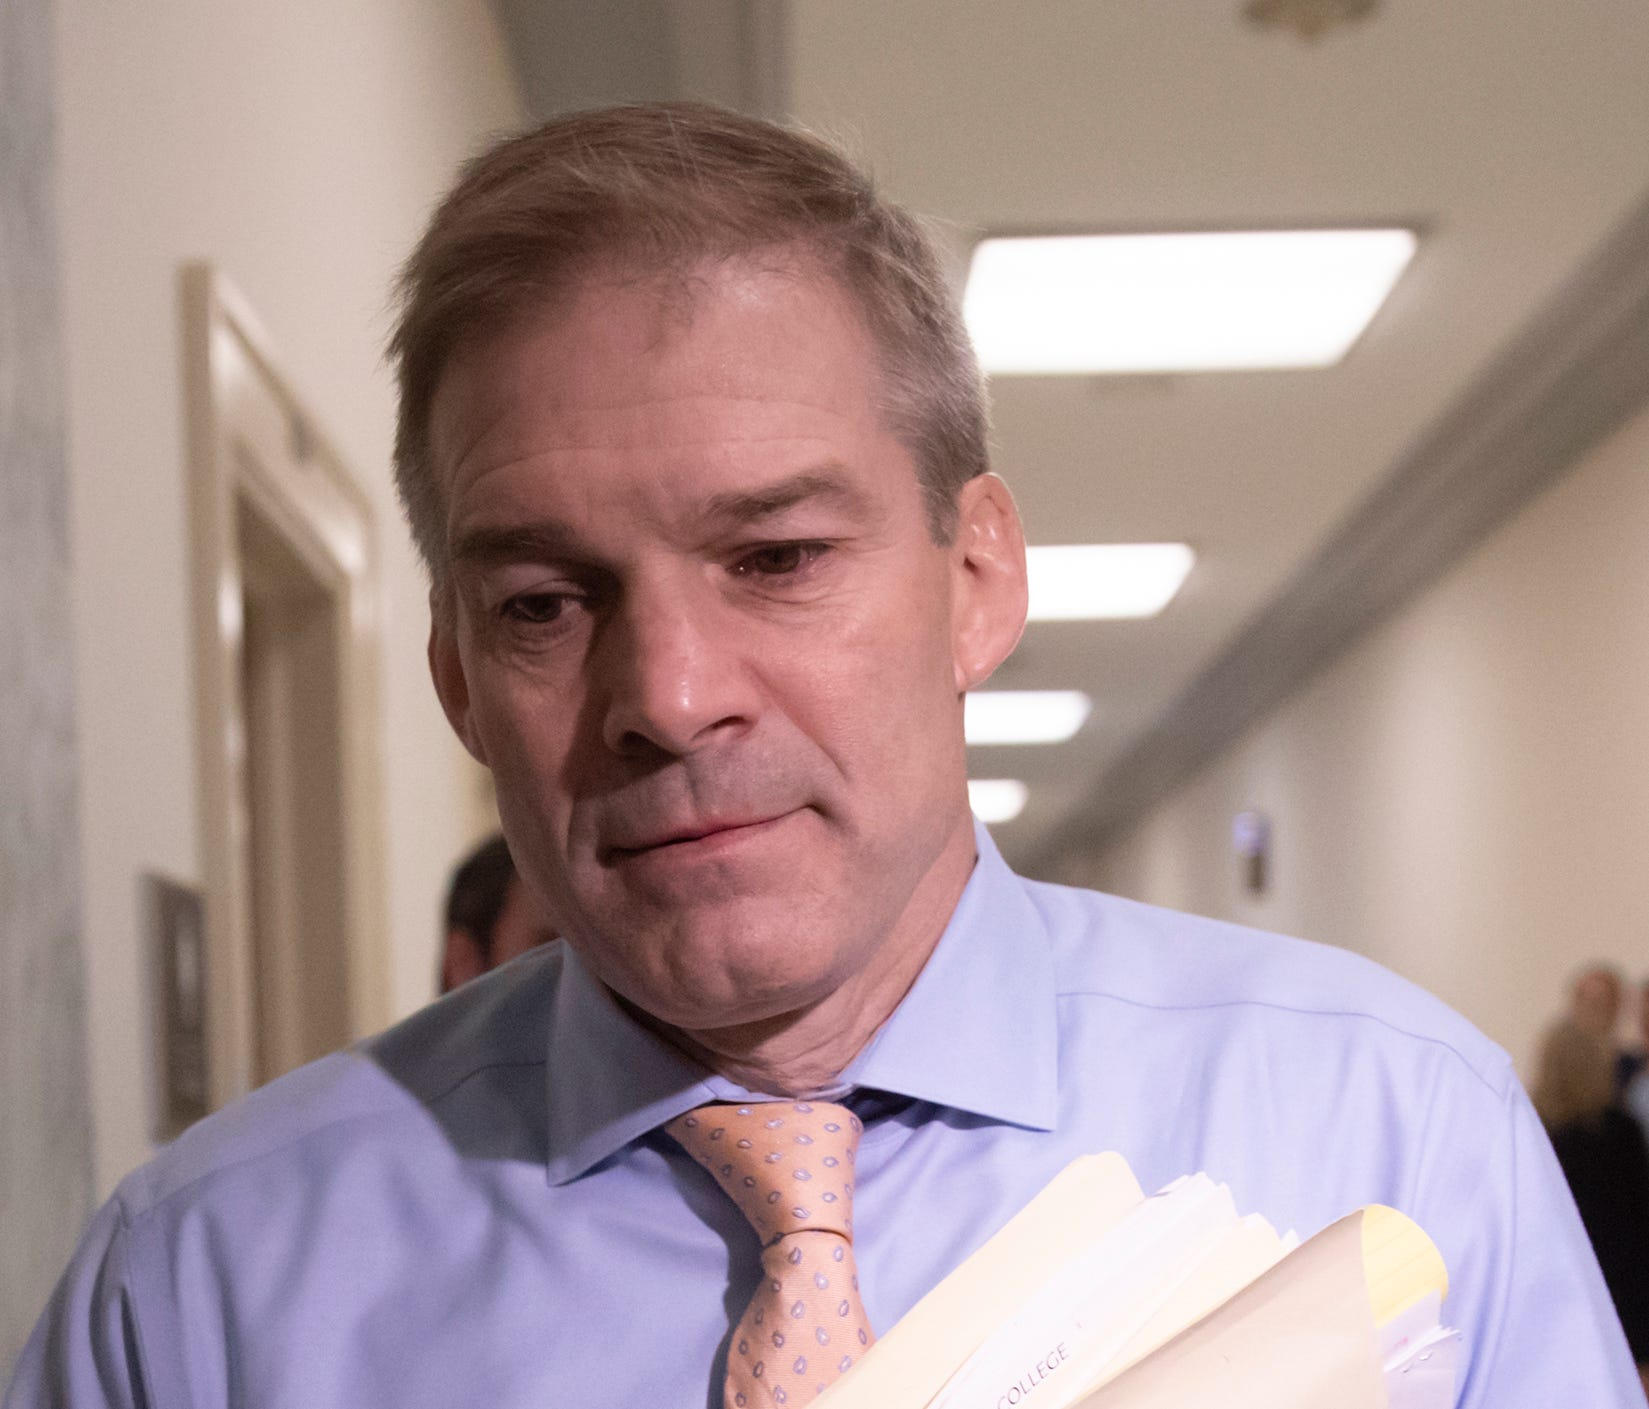 Rep. Jim Jordan (R-Ohio) was Ohio State's assistant wrestling coach from 1986-94.